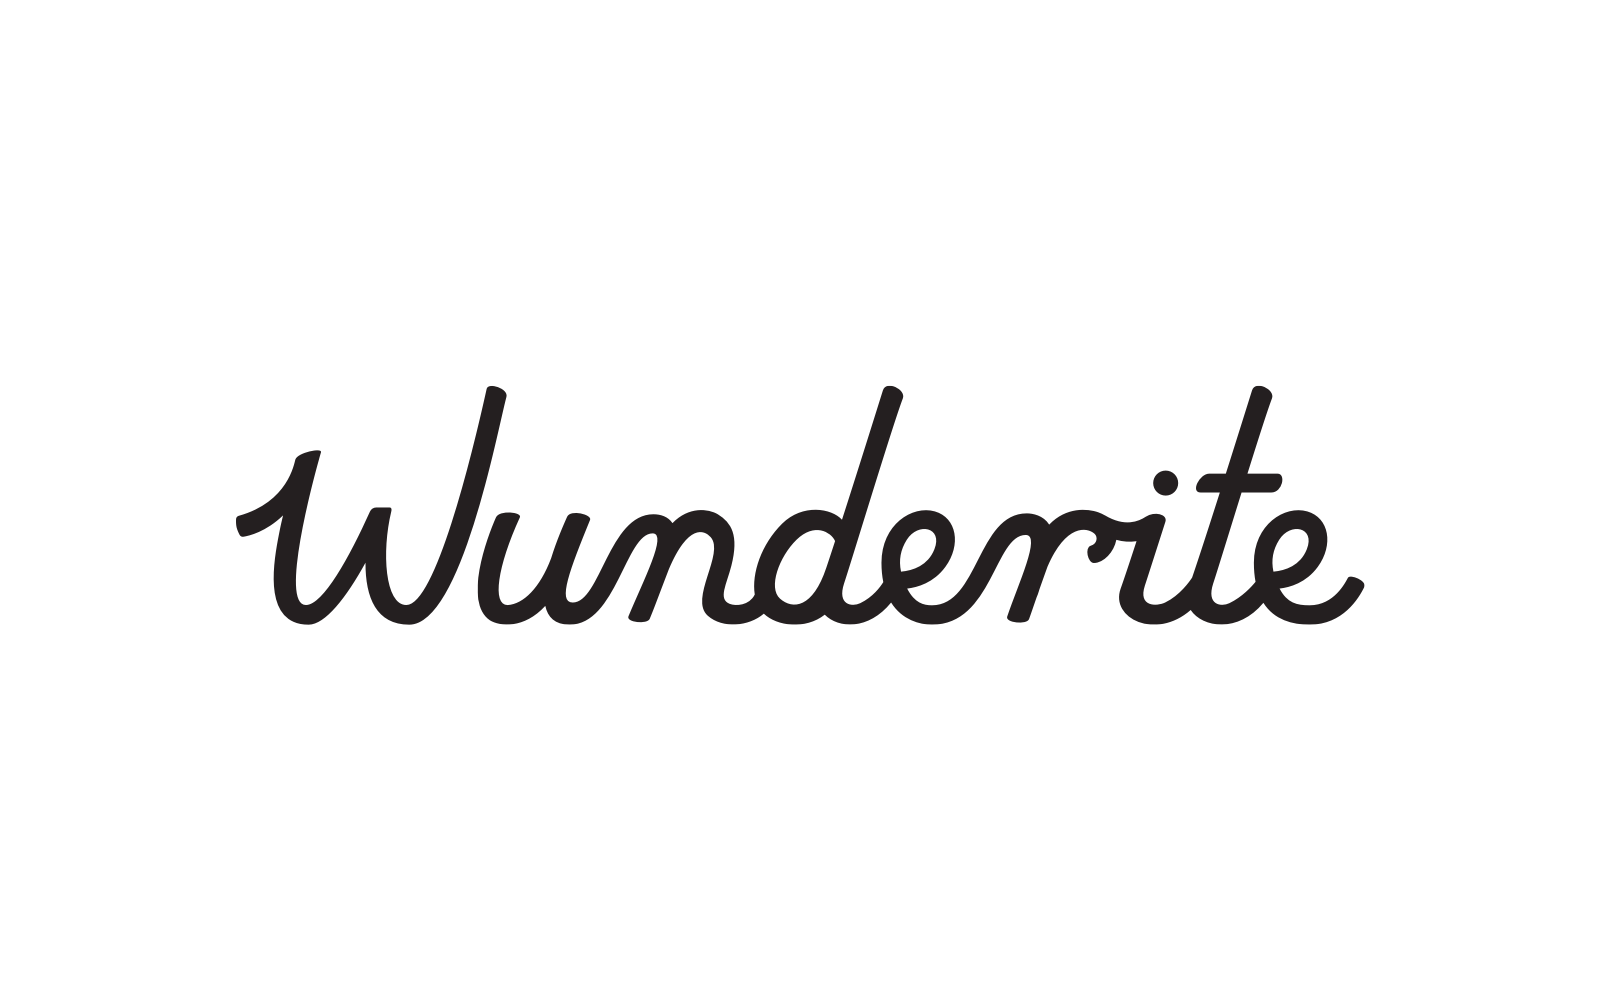 An abandoned handwritten version of the logo